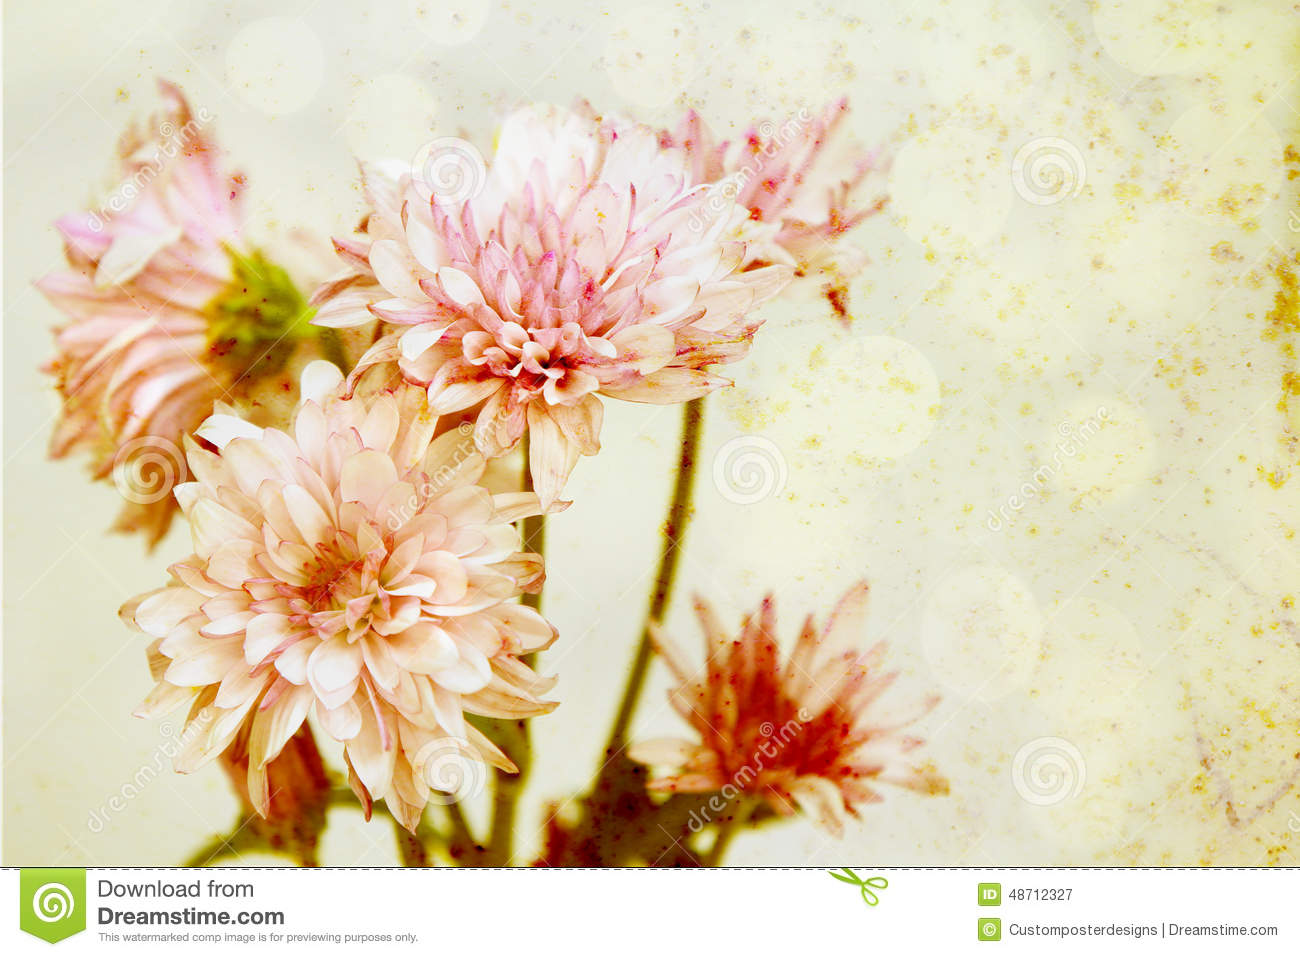 Download A rainbow of flowers. stock image. Image of design, abstract - 48712327